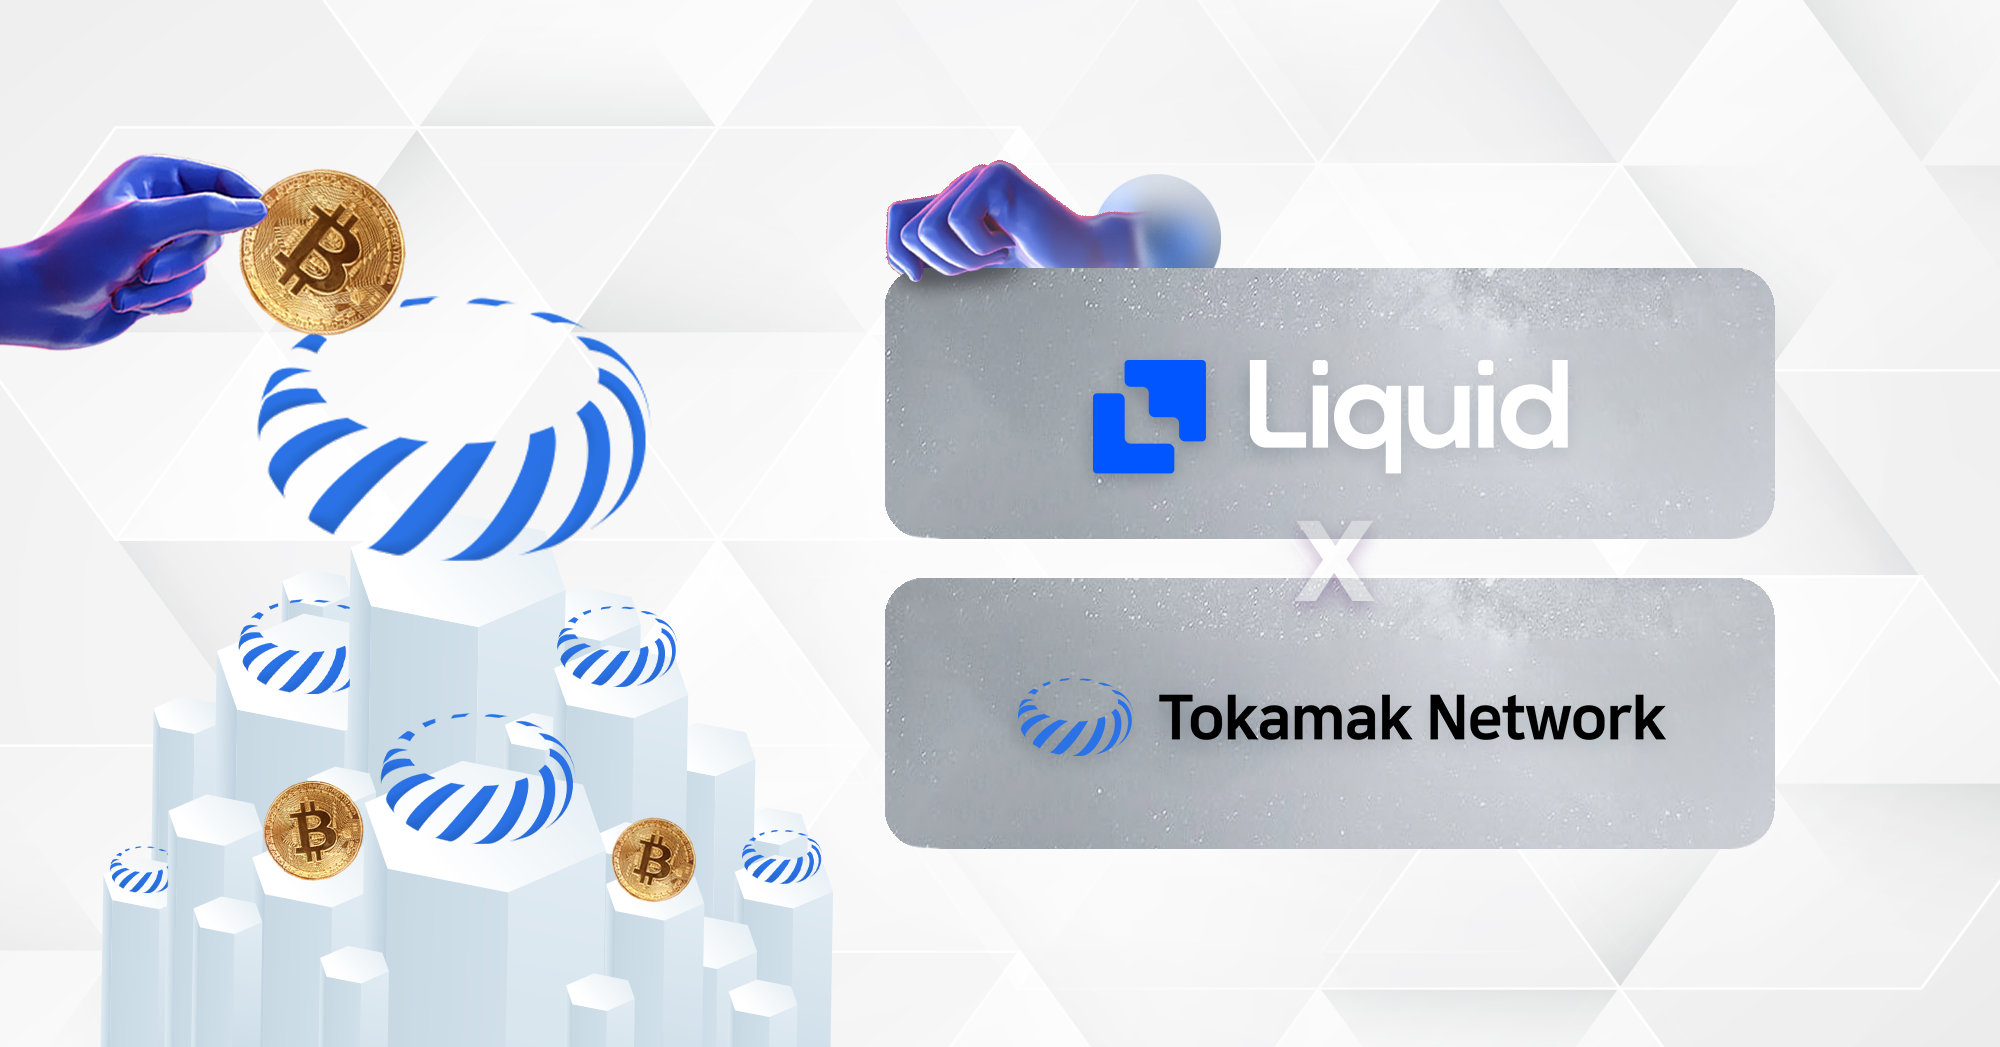 We are excited to announce that TON is now listed on Liquid!